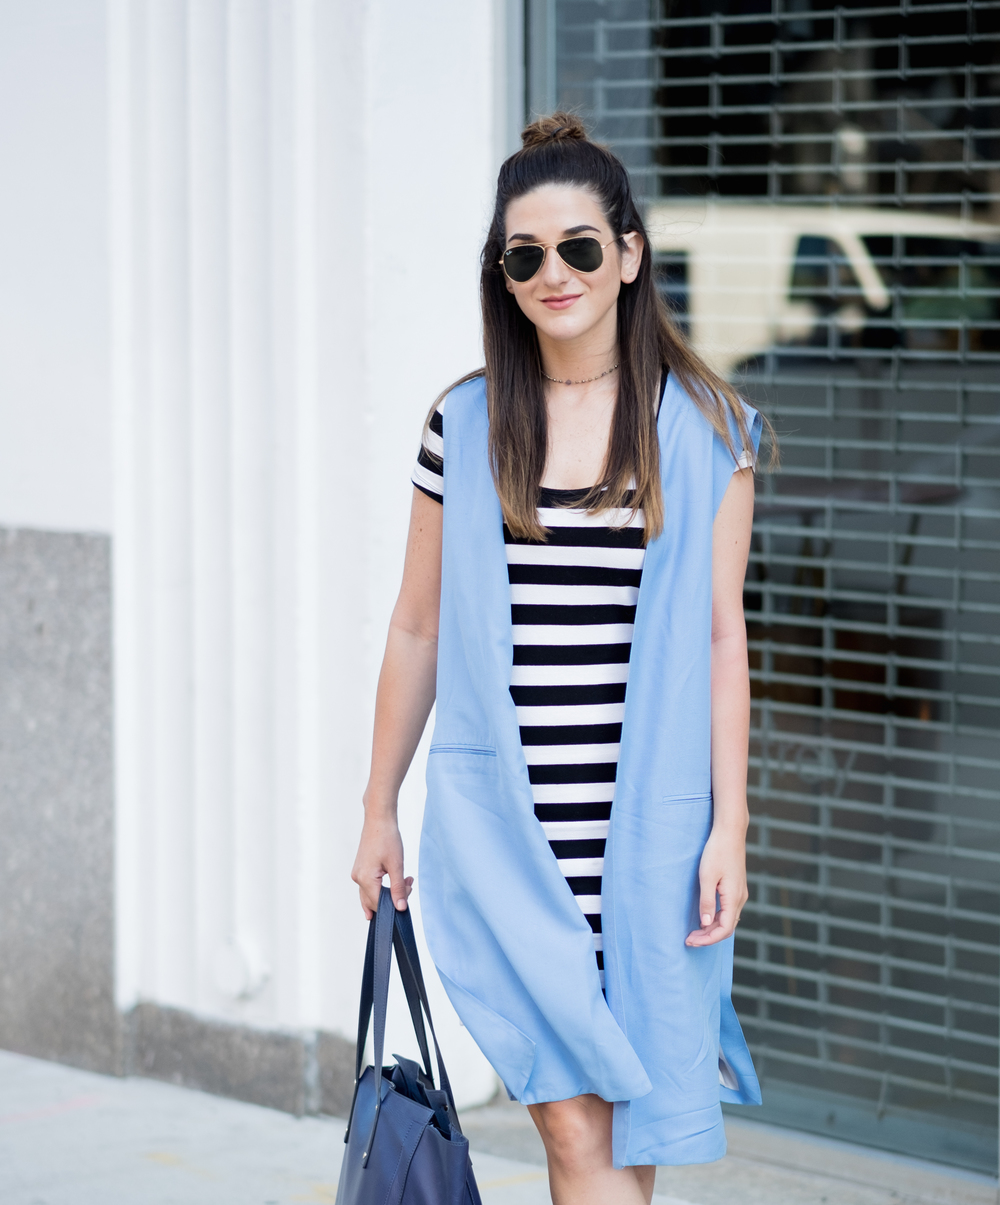 Striped Dress Long Light Blue Vest Louboutins & Love Fashion Blog Esther Santer NYC Street Style Blogger Outfit OOTD Topknot Hair Inspo Girl Women Wedges Dolce Vita Bag Ivanka Trump Soho Tote Aviator Ray-Ban Sunglasses Choker Trendy Summer Photoshoot.jpg